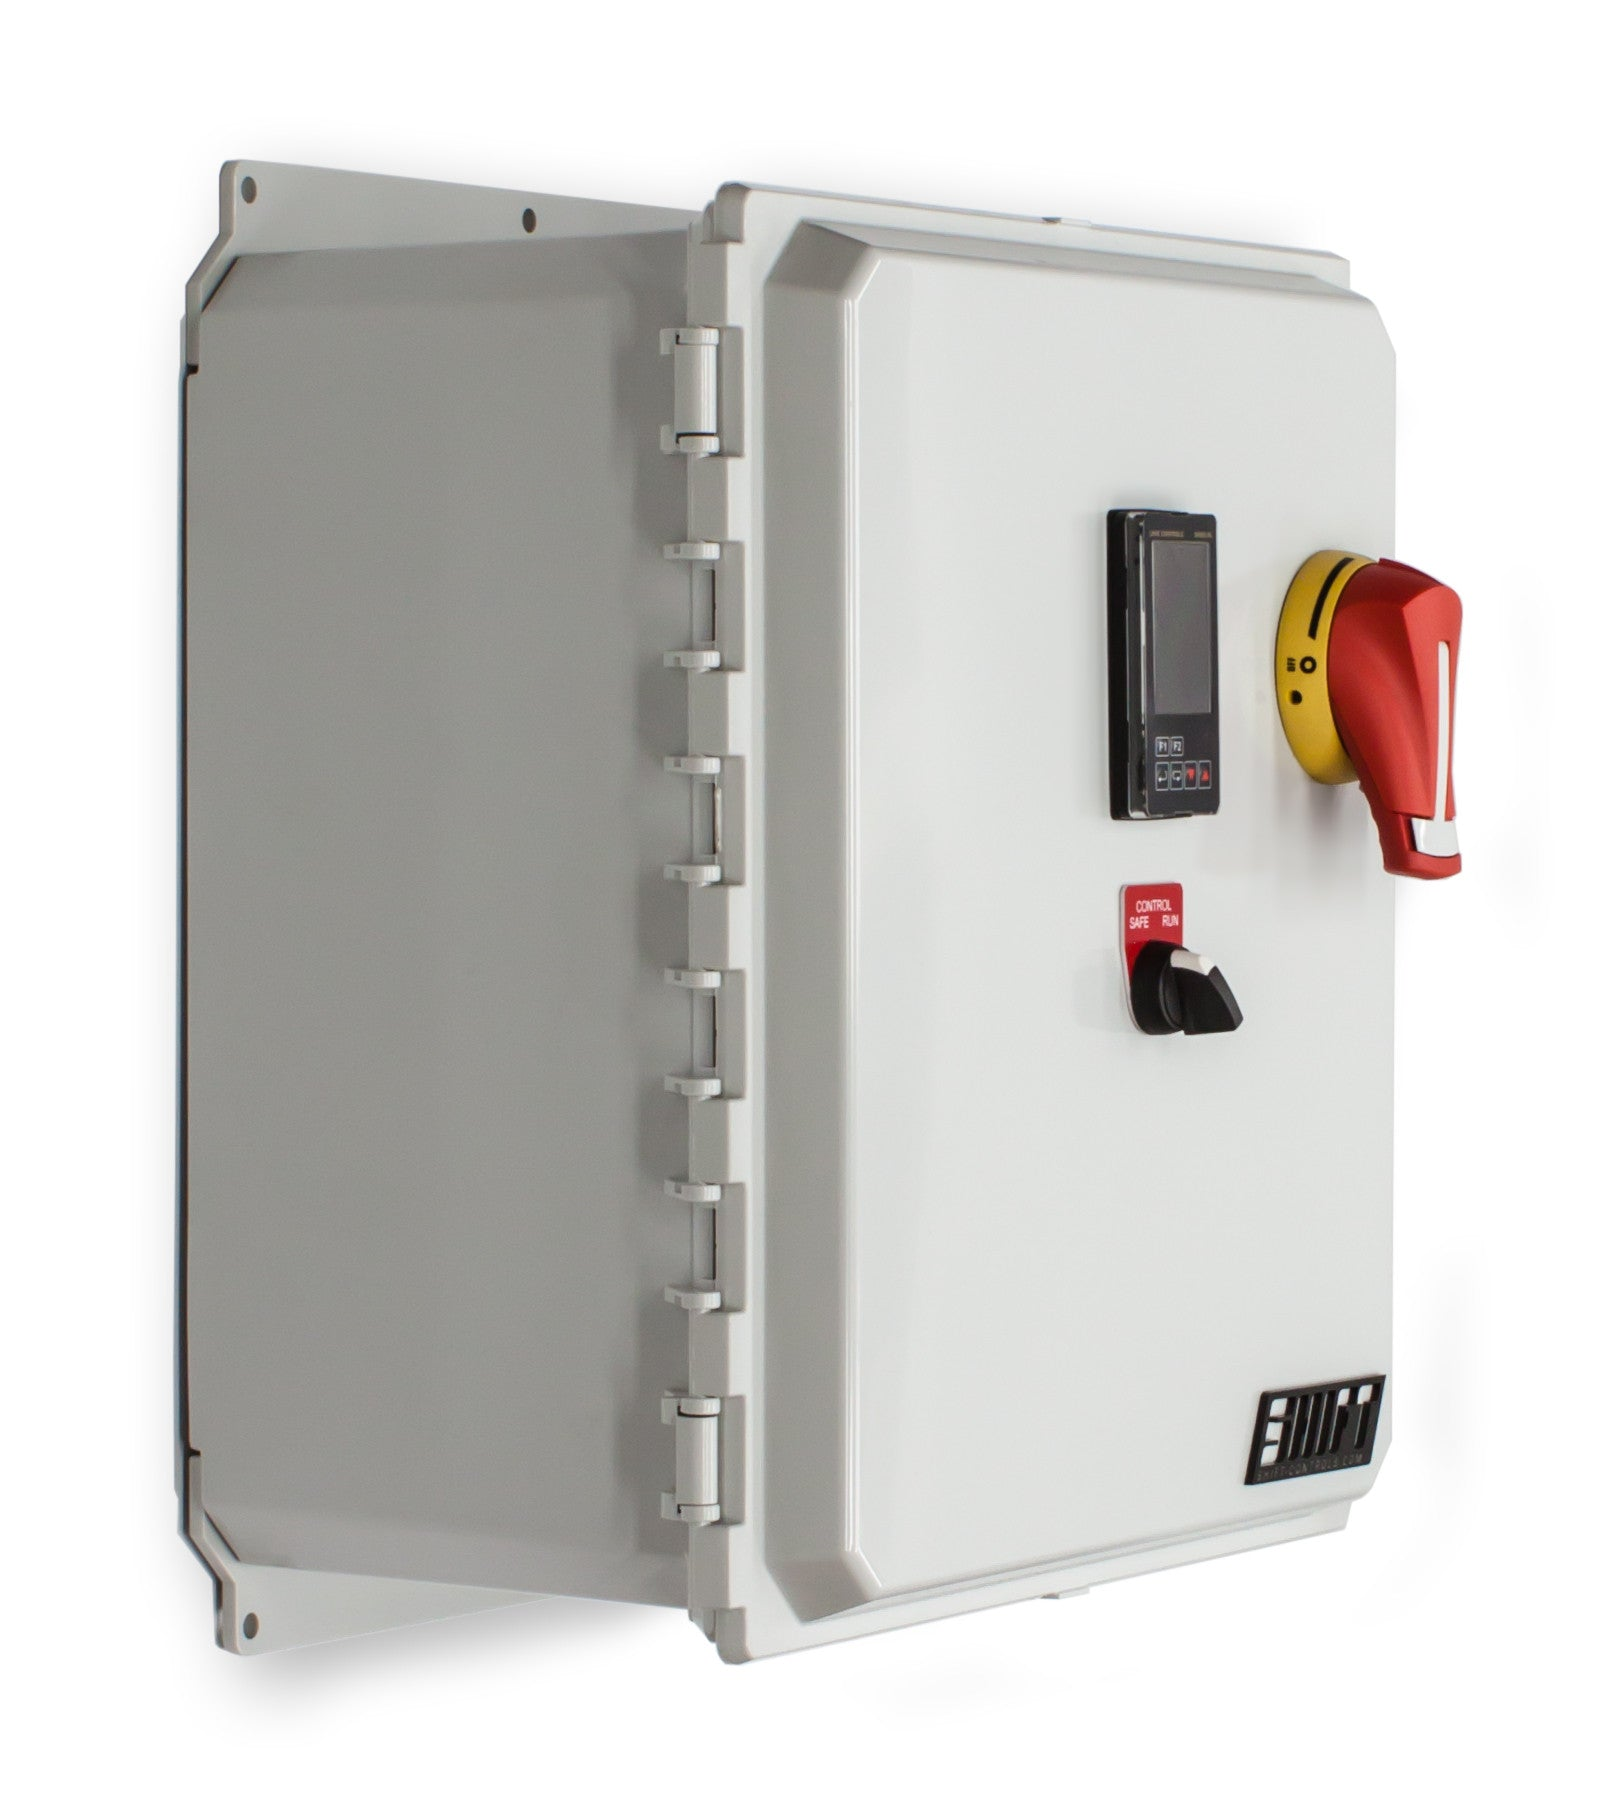 Temperature Control Panel Single Phase 120 Vac 35 Amp 420kw How To Inspect The Size Of Main Electrical Disconnect Fuse Or 120v 35a Shift Controls Latch Iso